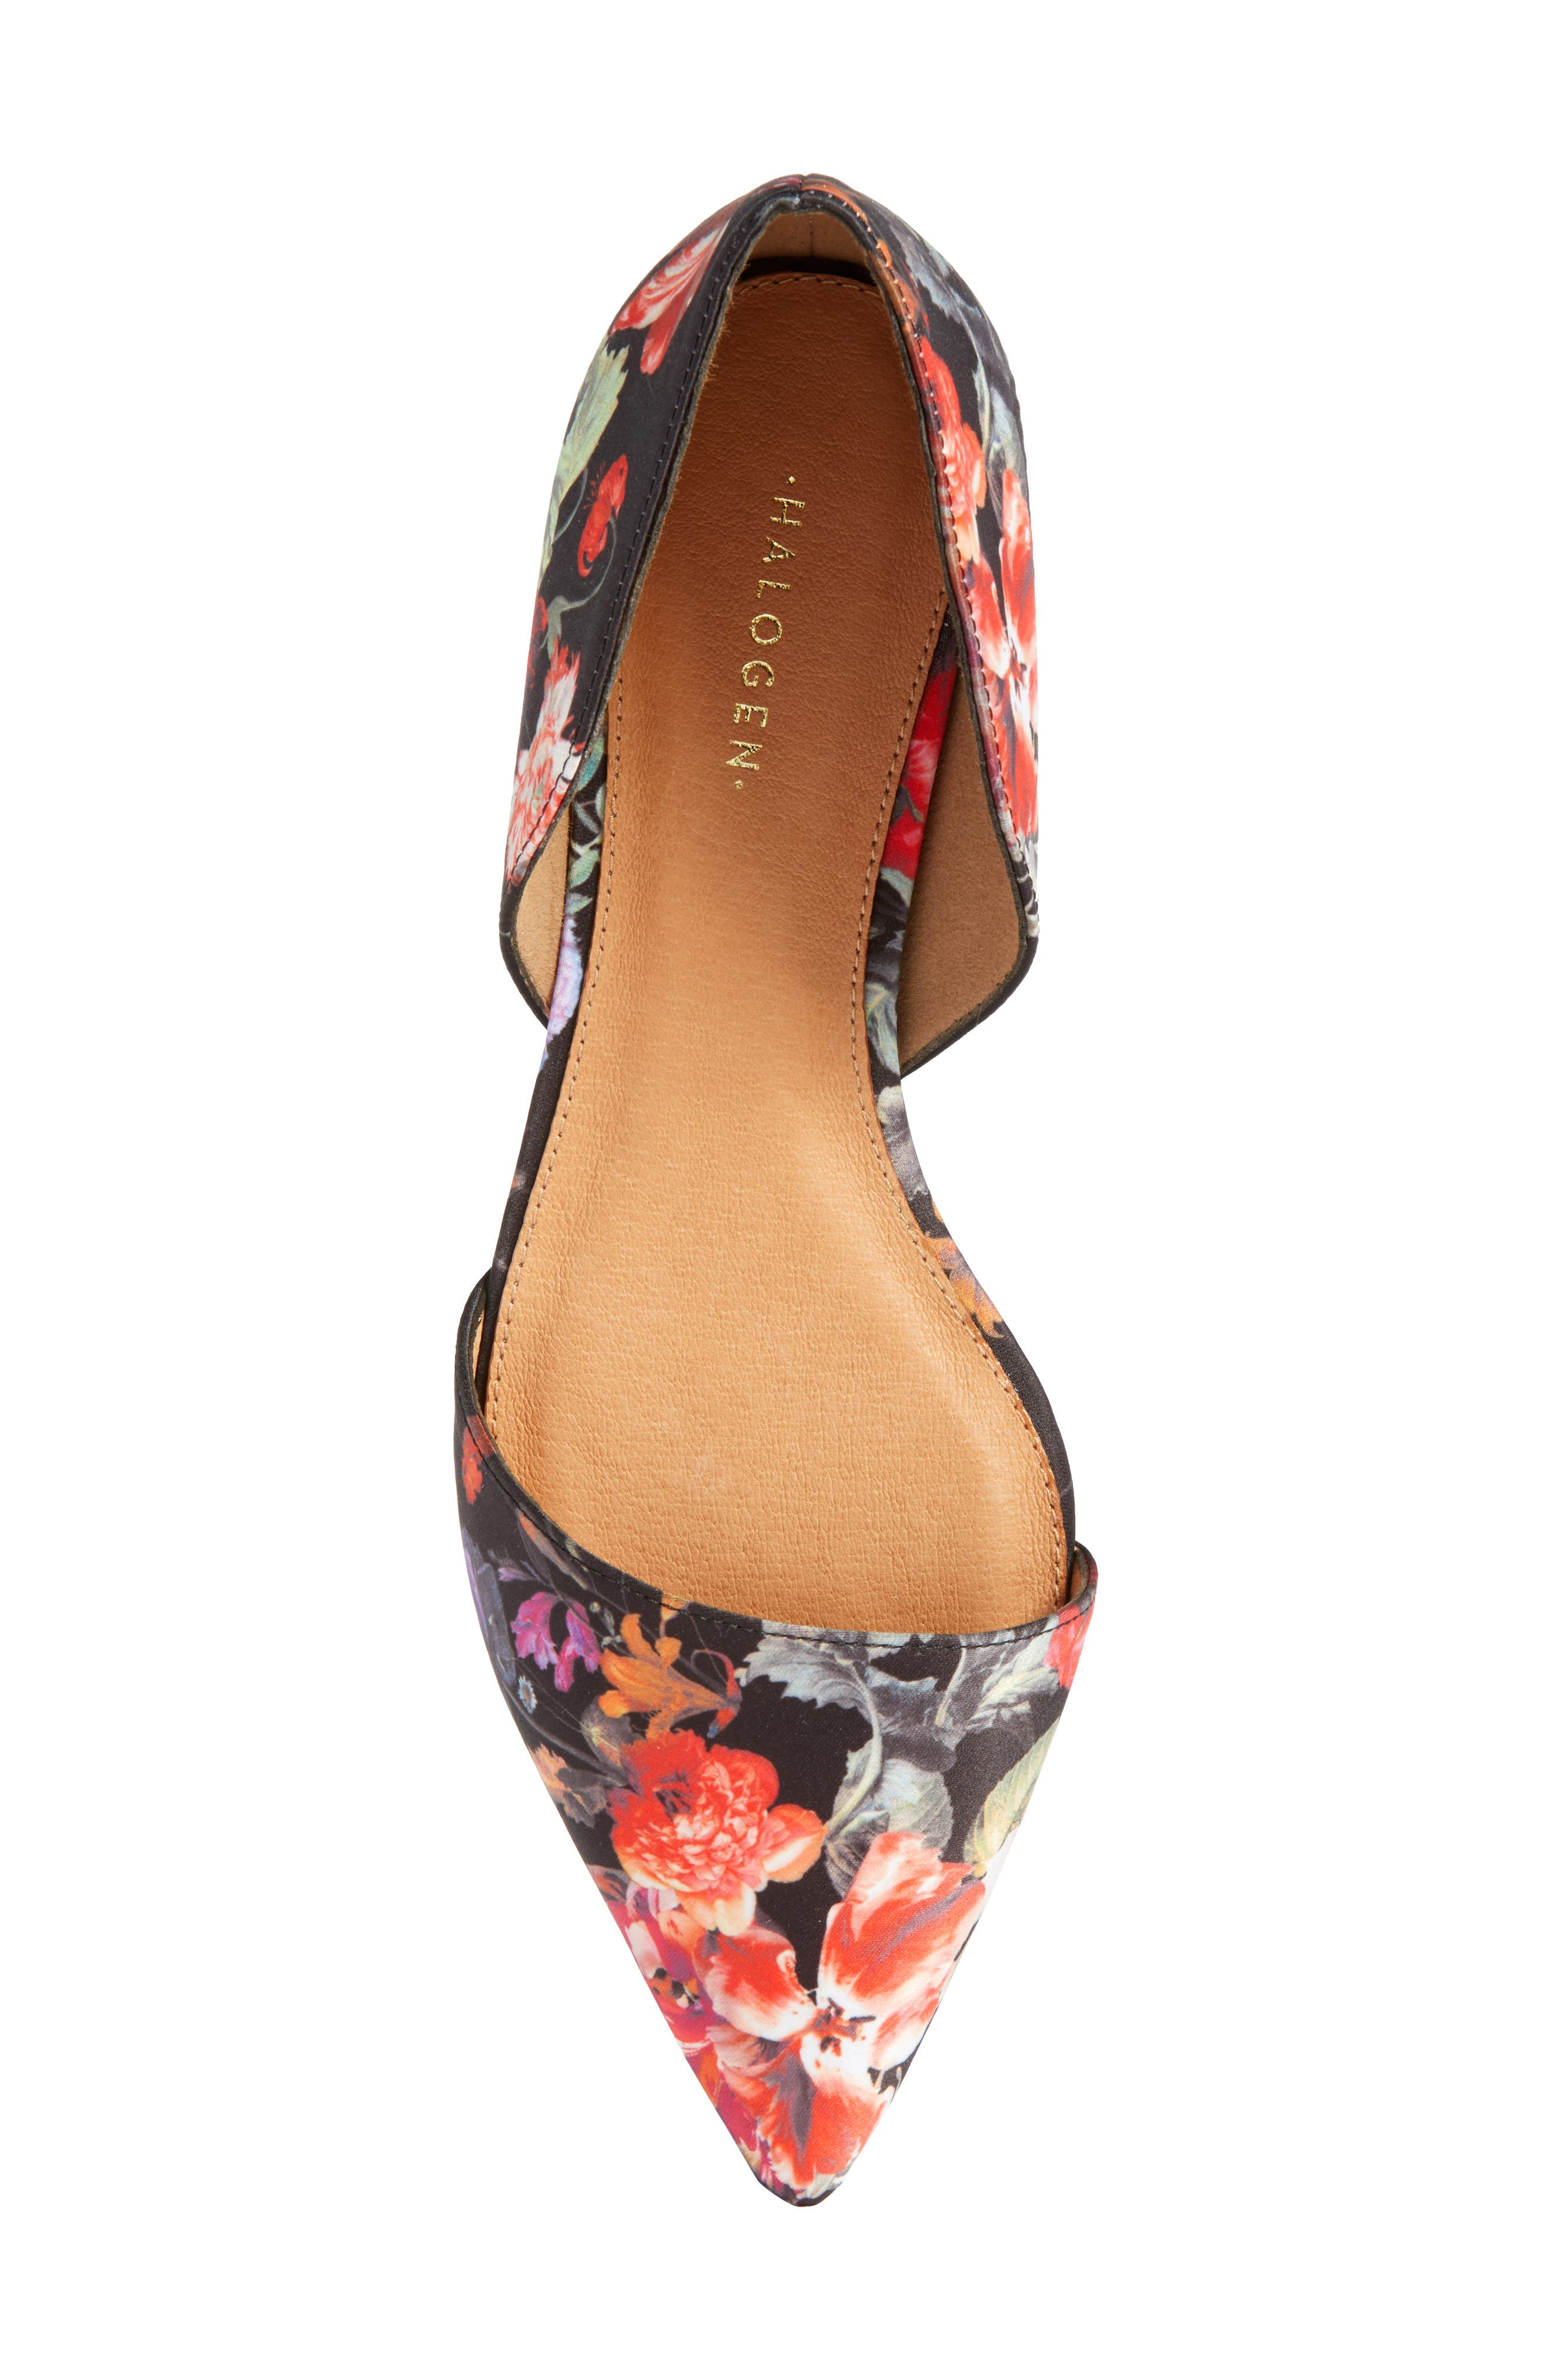 Maisy d'Orsay Flat,                             Alternate thumbnail 6, color,                             Black/ Red Floral Fabric